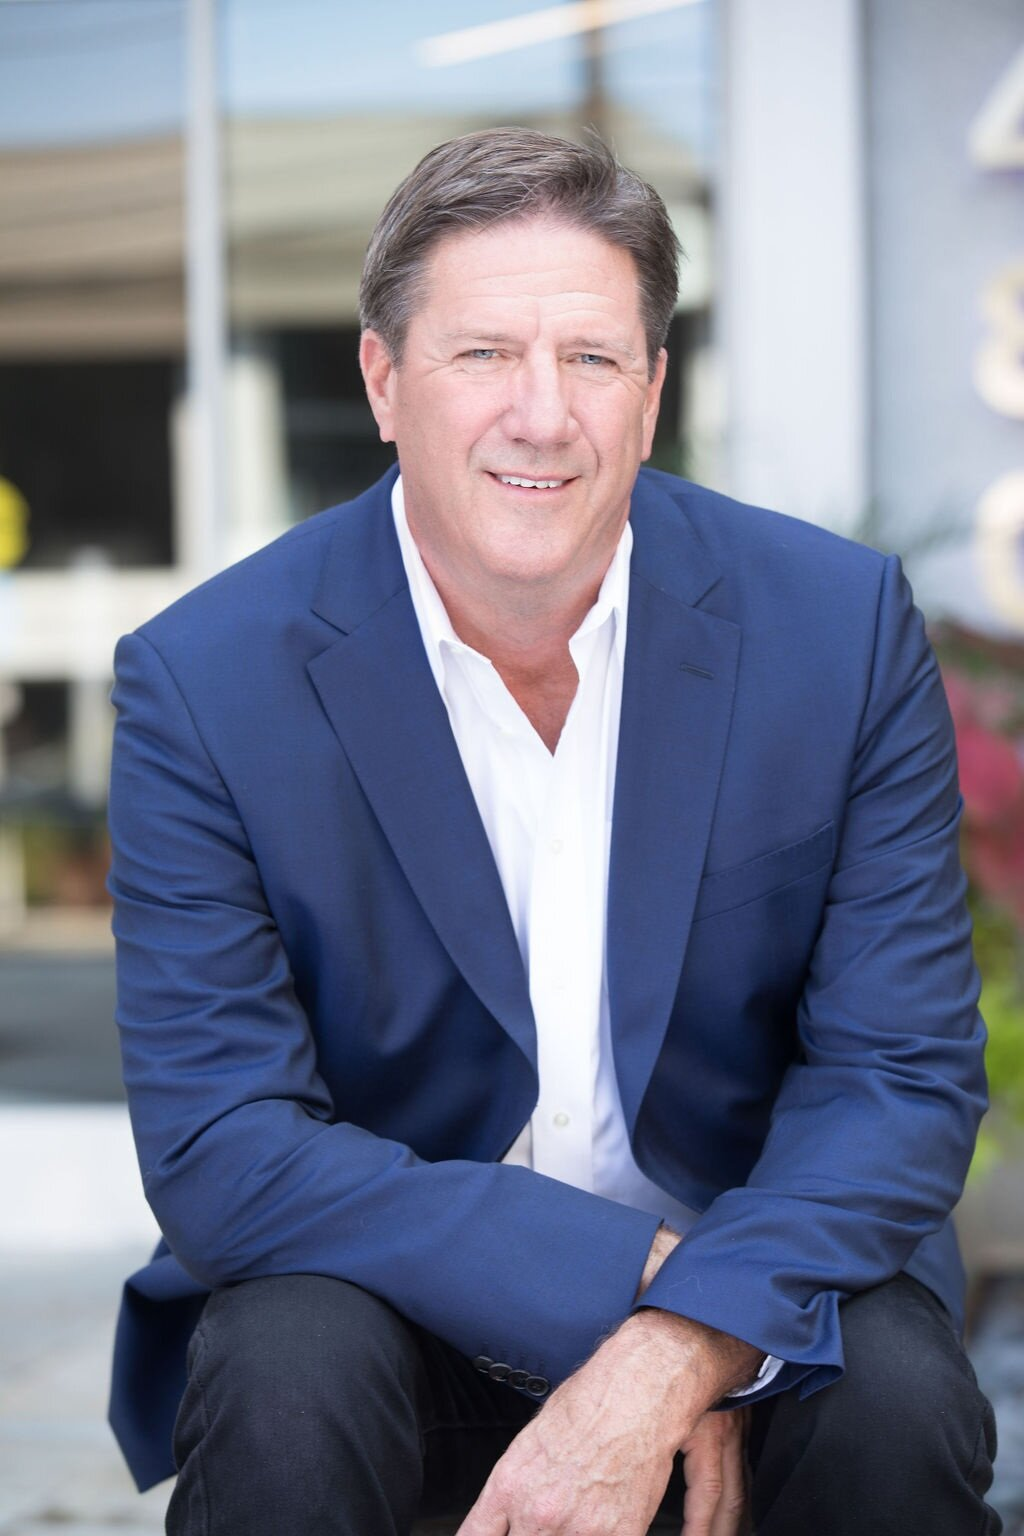 Steve Israel is the Broker and President of Buyer's Edge Real Estate Company in the Washington, DC metro area.